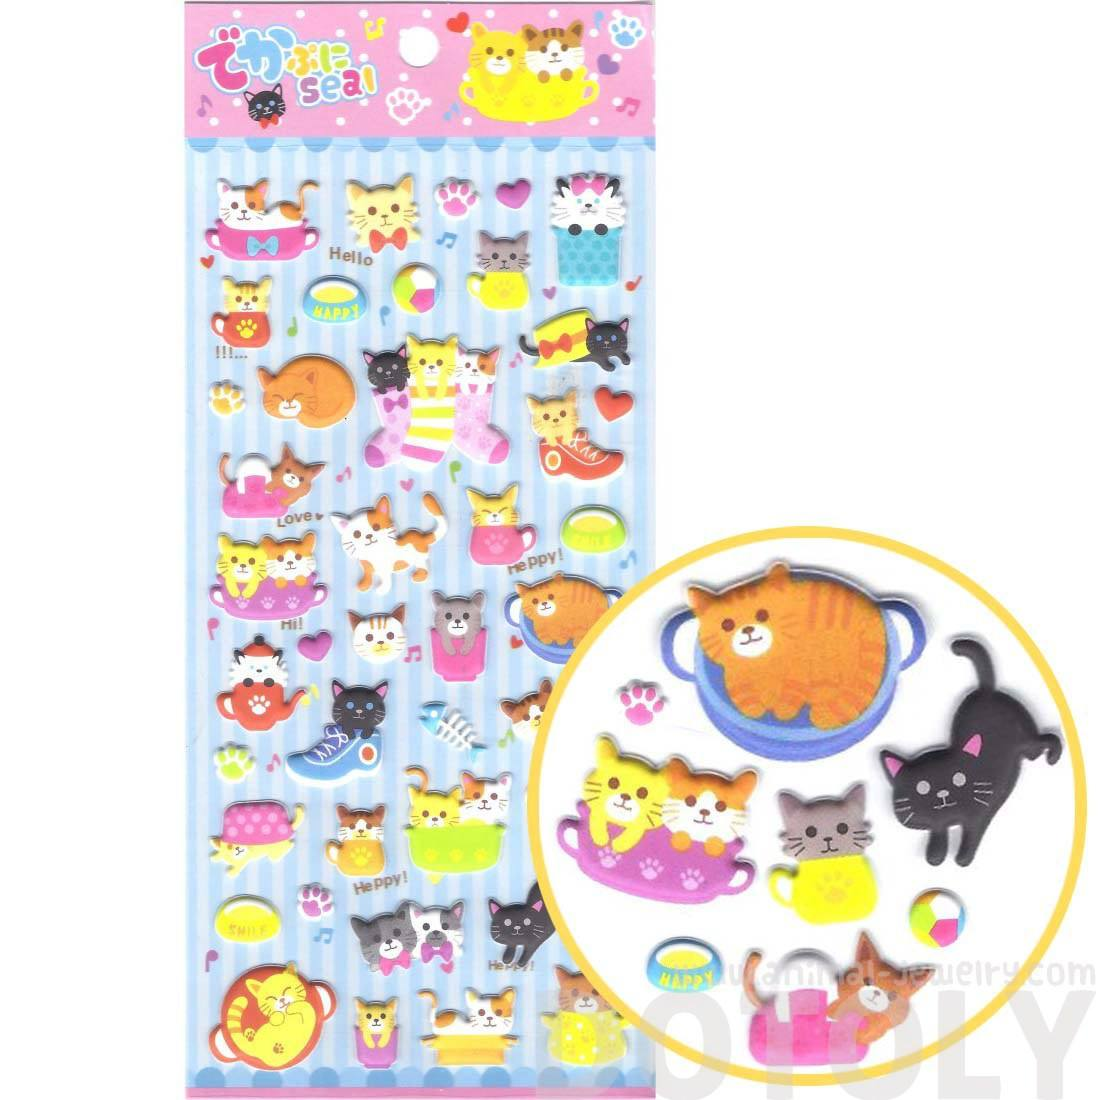 Cute Kitty Cat Shaped Japanese Cartoon Animal Themed Puffy Stickers